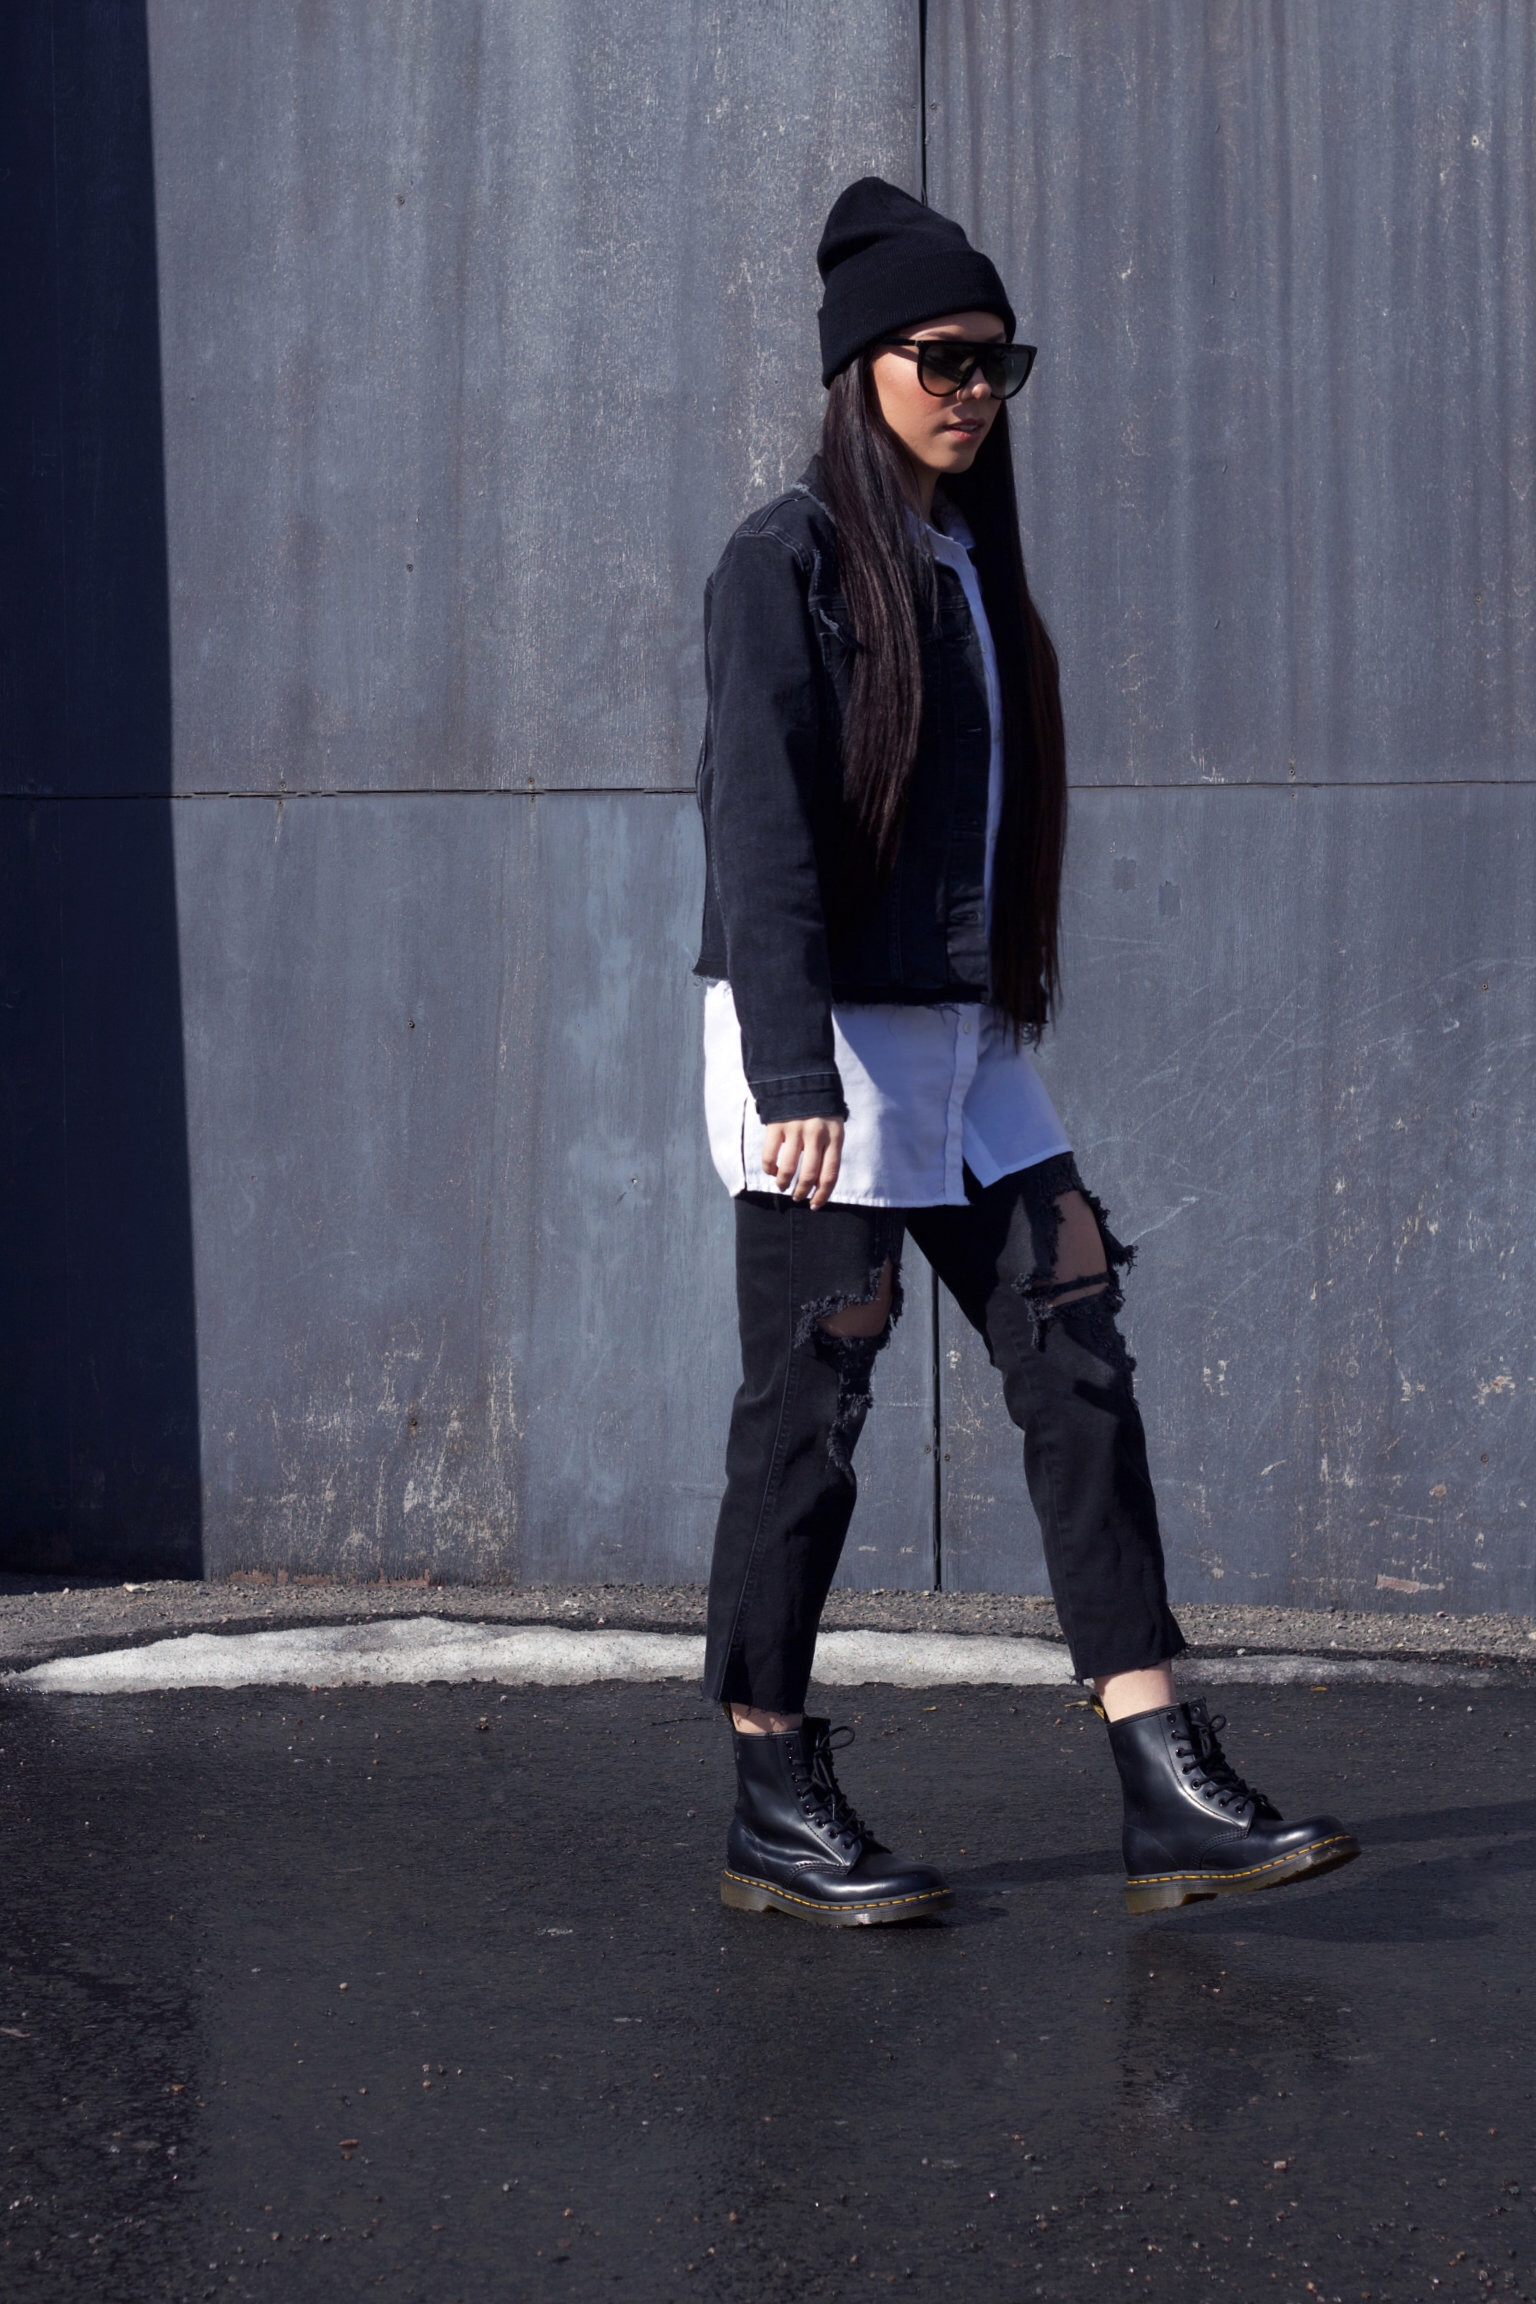 Céline Sunglasses - with Dr. Martens boots, ripped jeans and a denim jacket